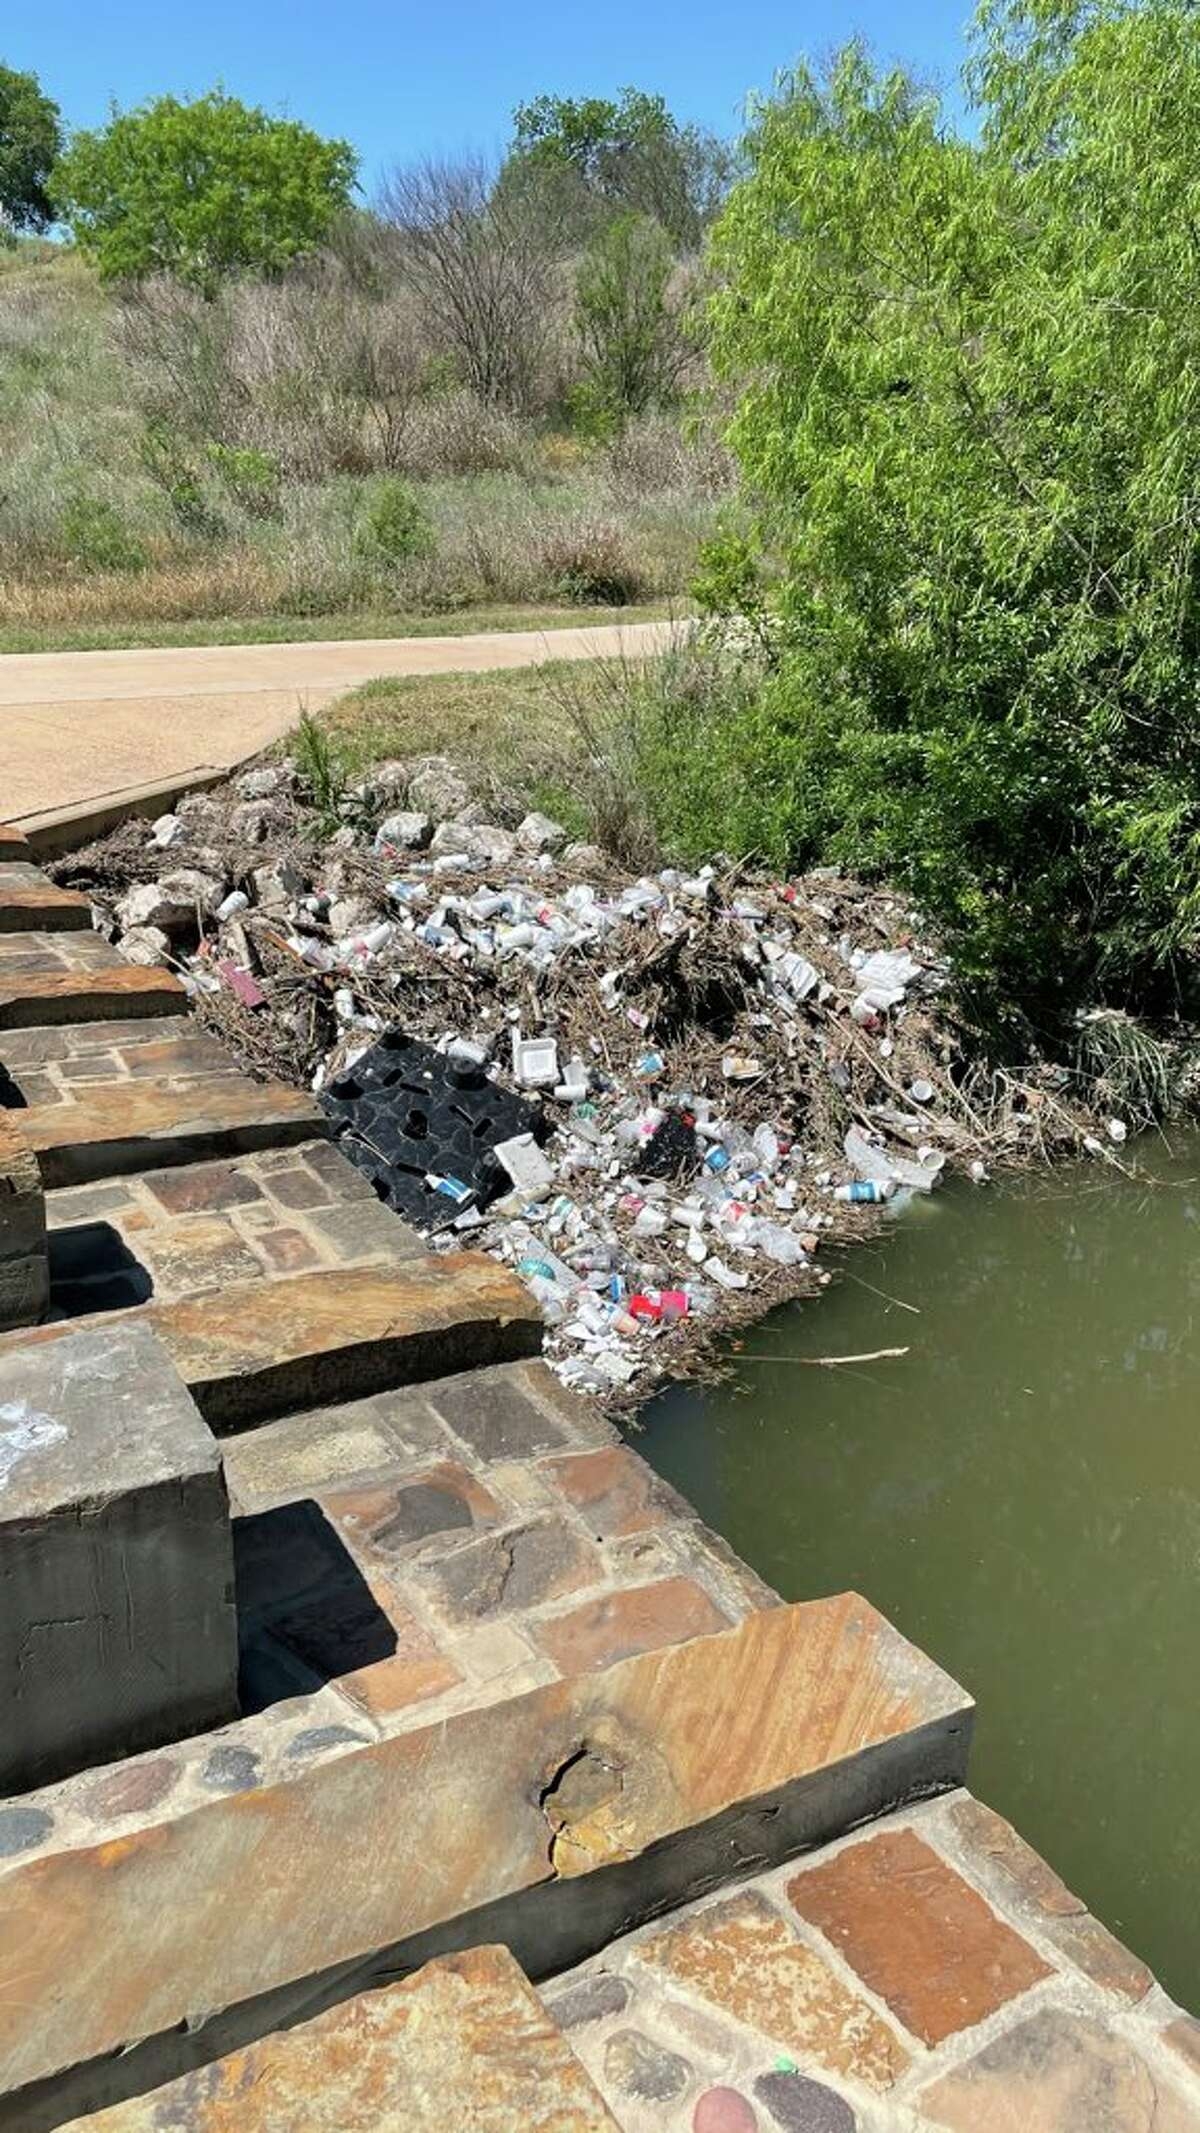 In April, a pile of trash was found on the San Antonio River, south of downtown.